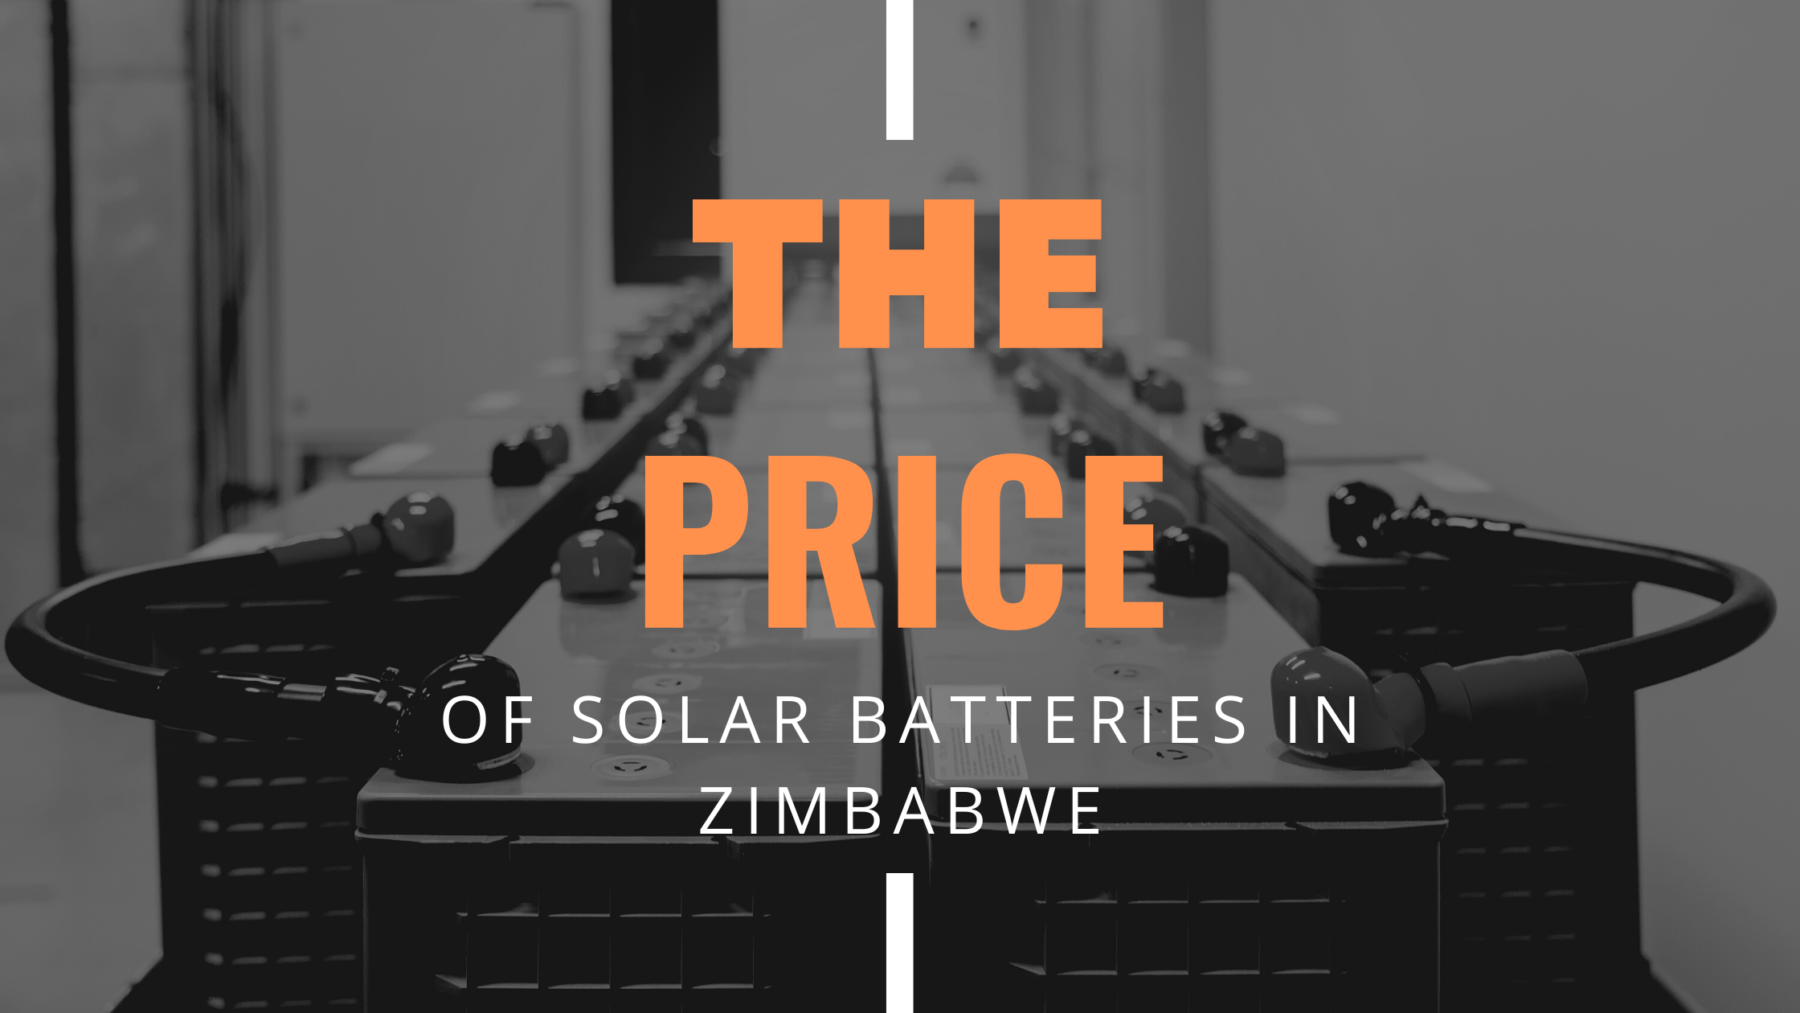 THE PRICE OF SOLAR BATTERIES IN ZIMBABWE.